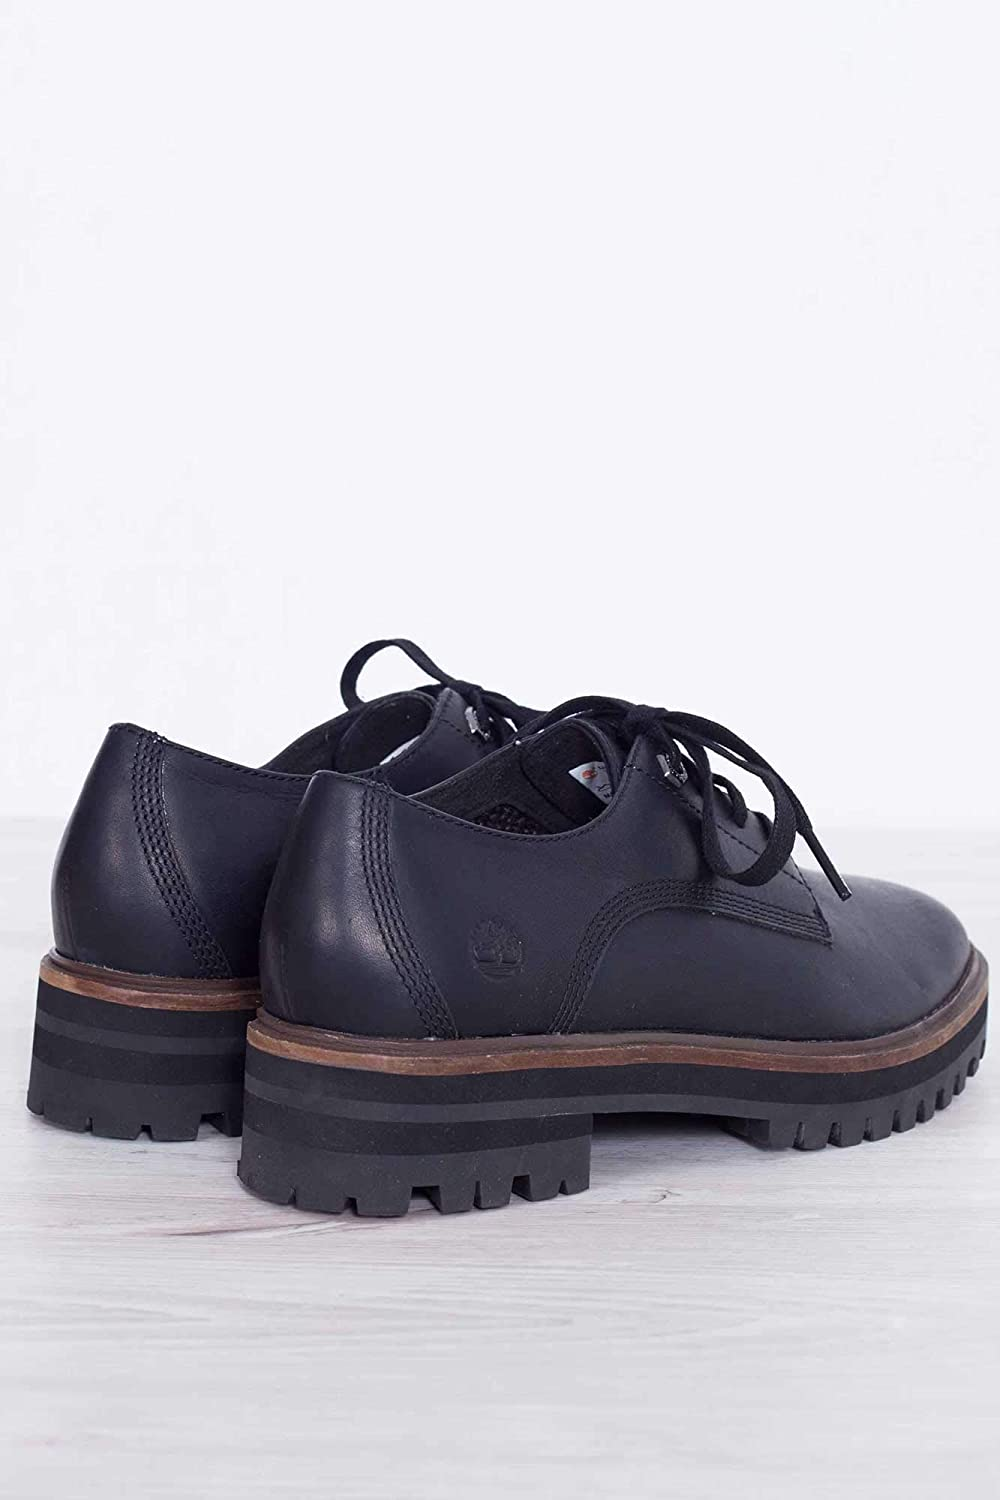 Timberland London Square, Chaussure pour Femme